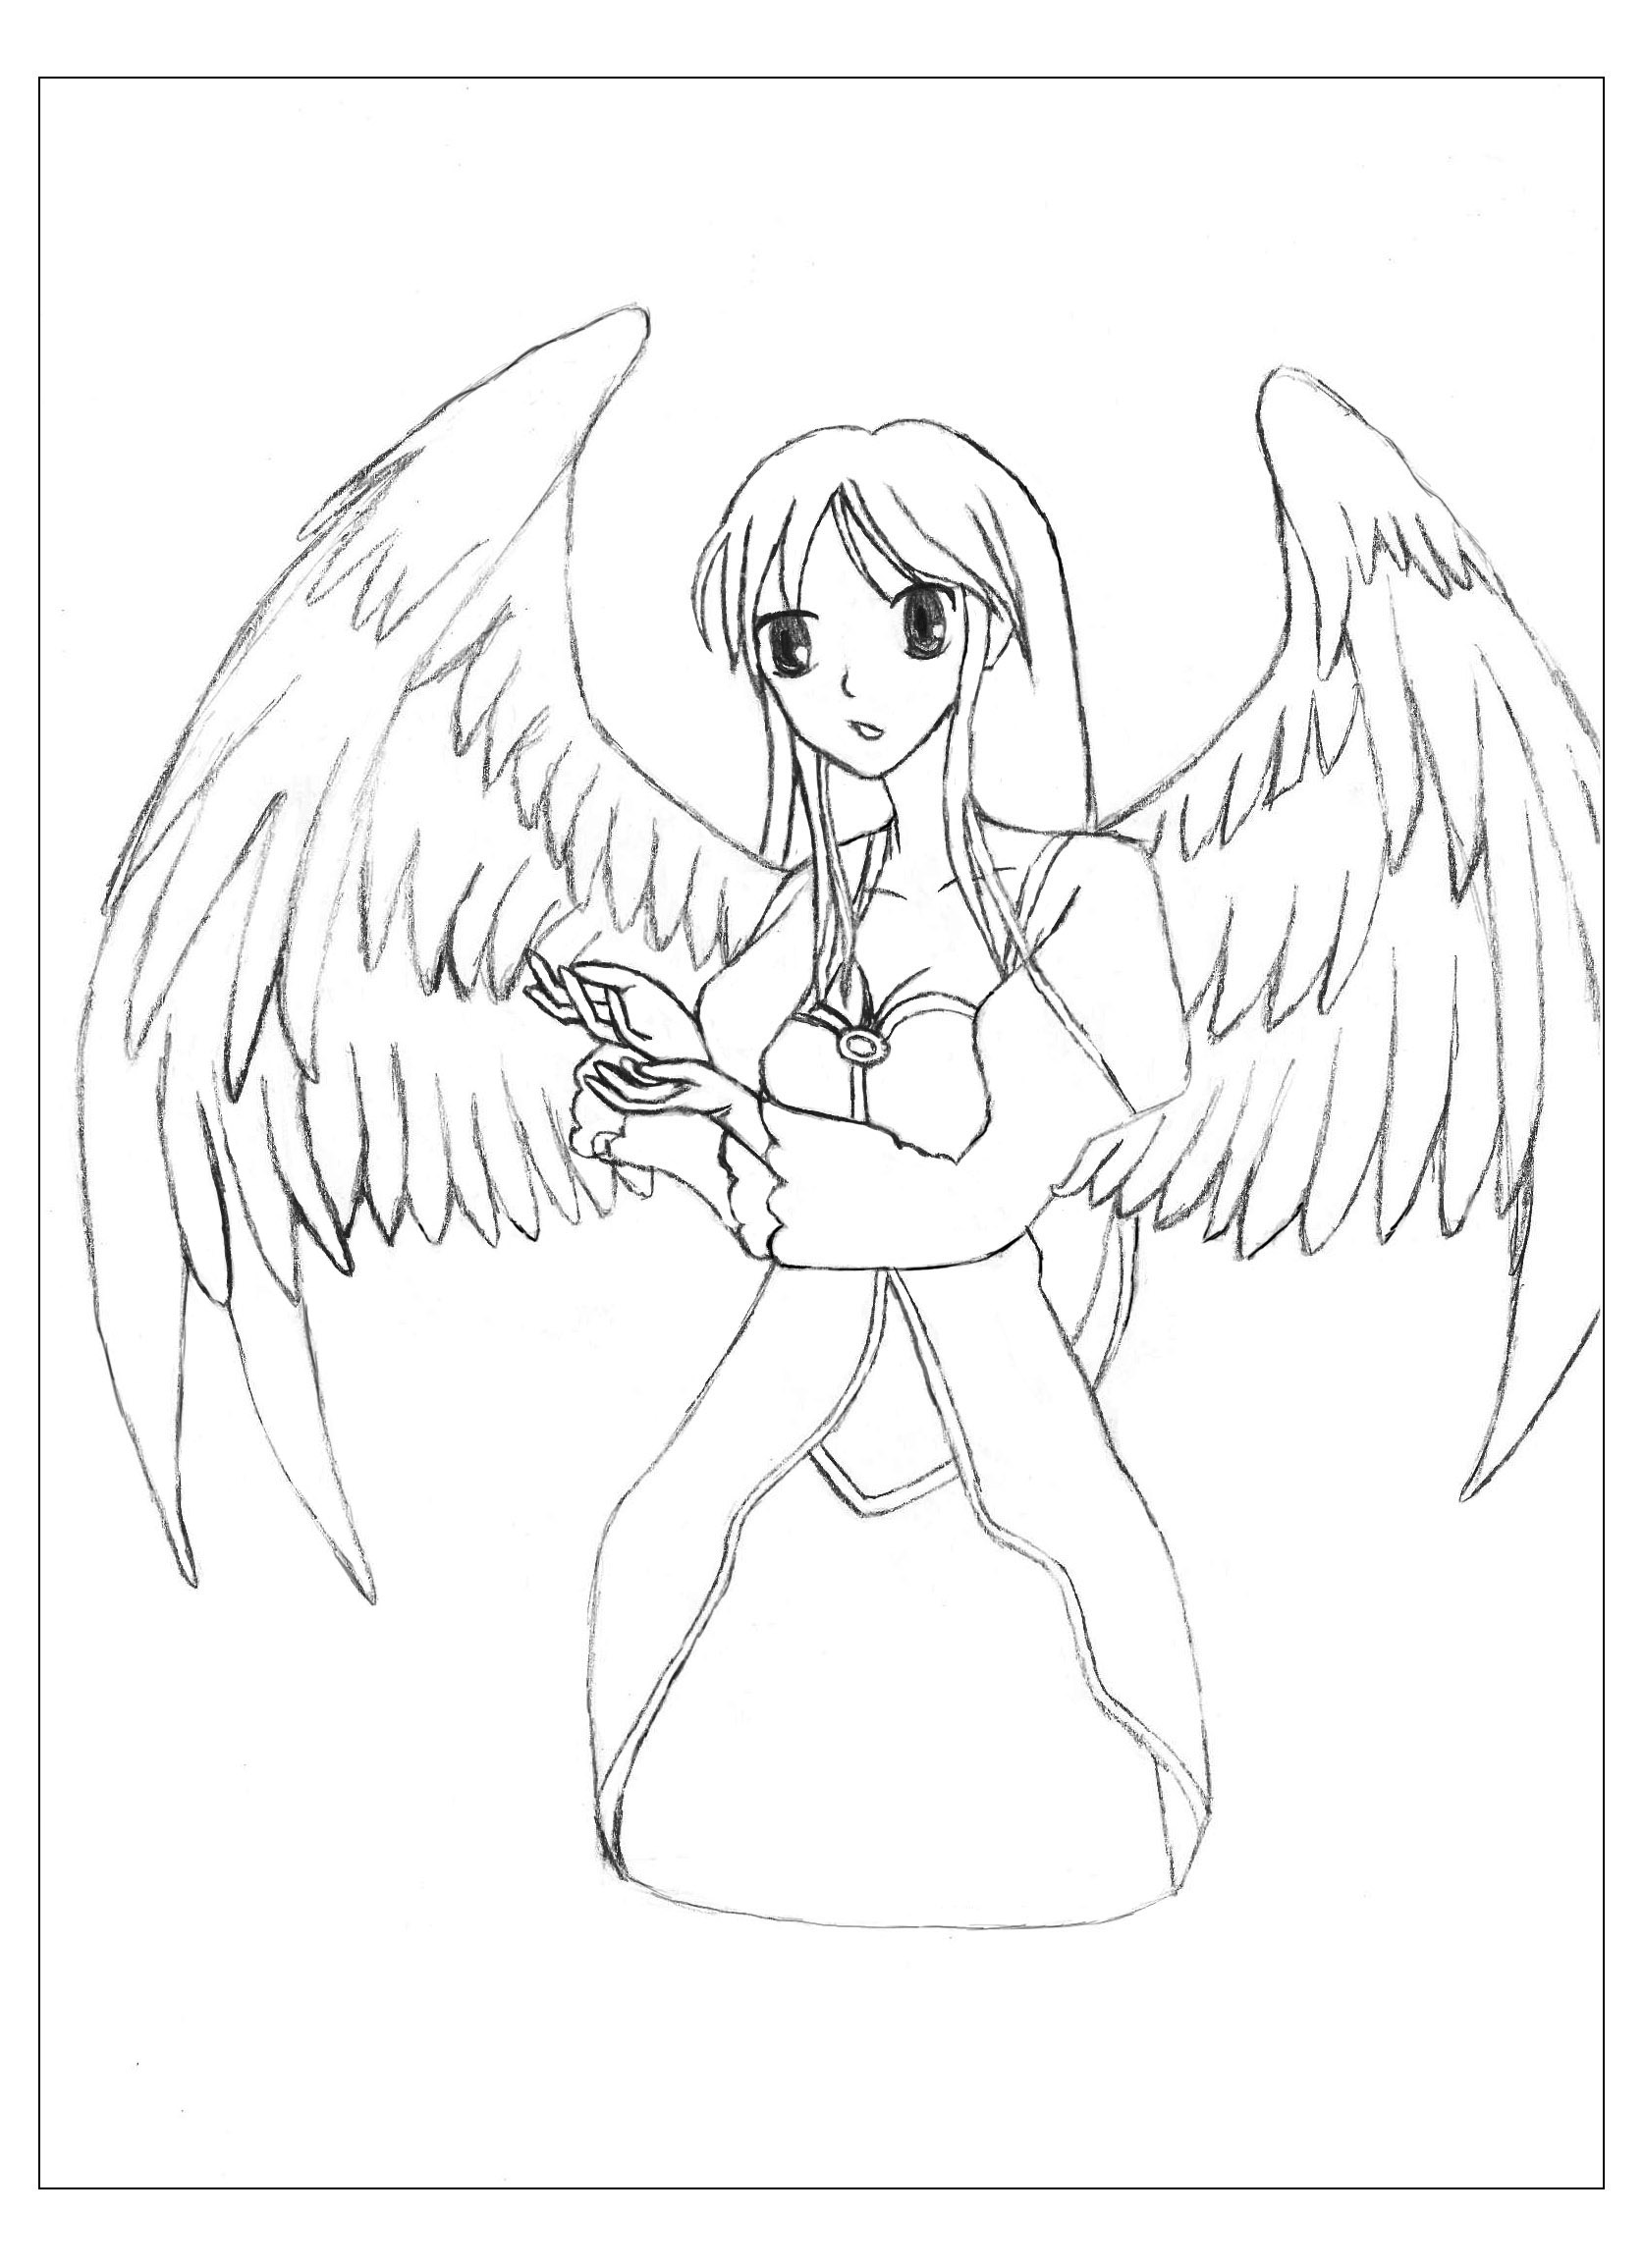 Manga coloring page to print and color for free